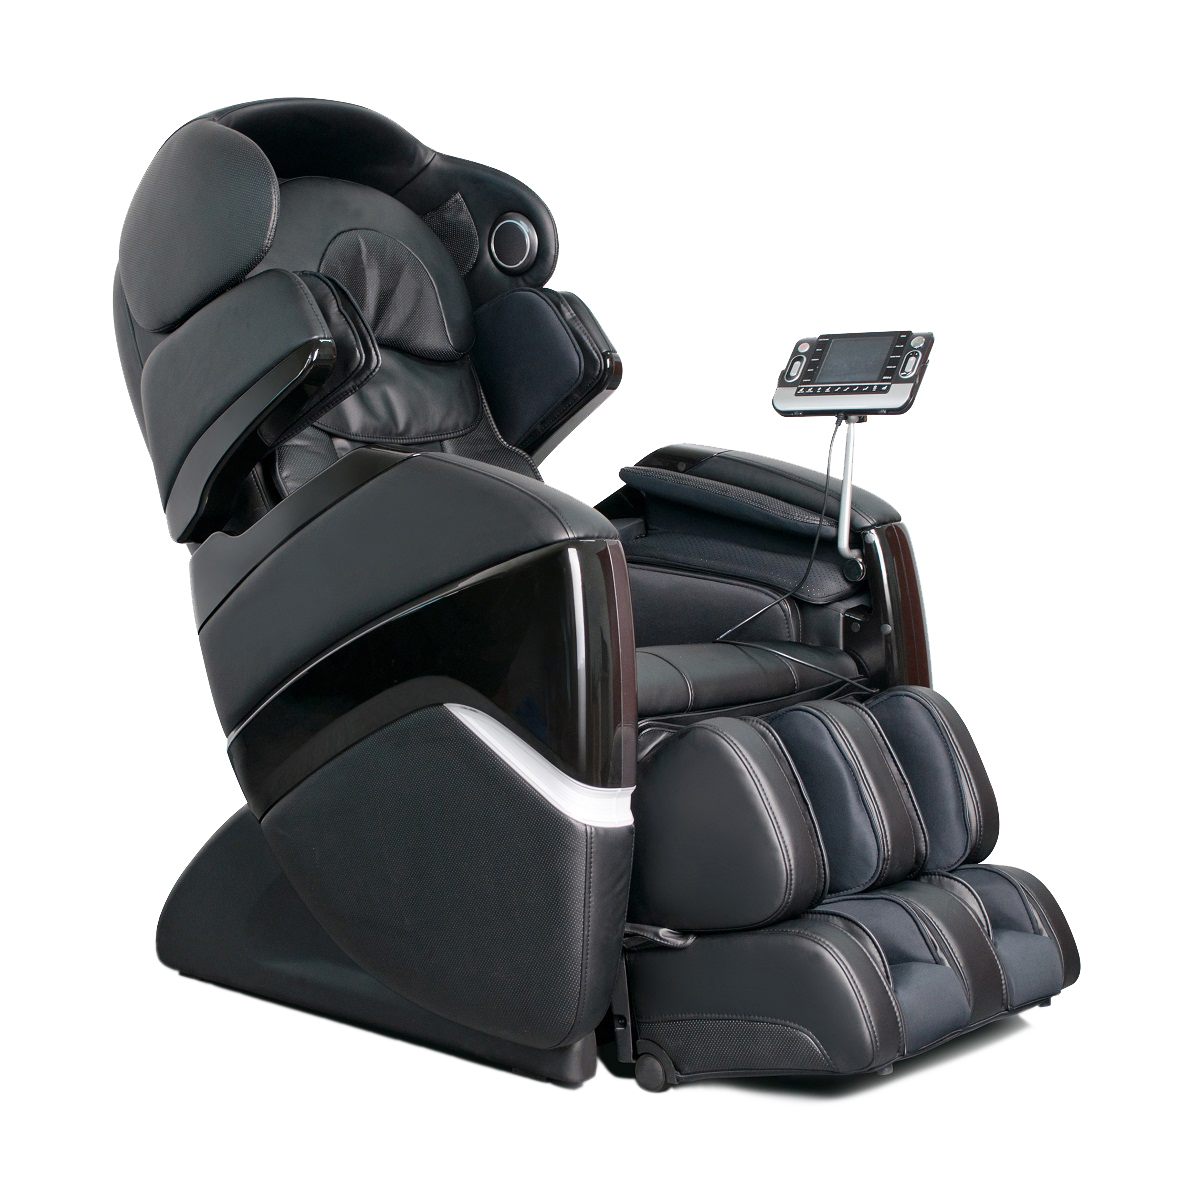 massage zero gravity chair brown leather rocker os 3d red osaki pro cyber recliner details about warranty